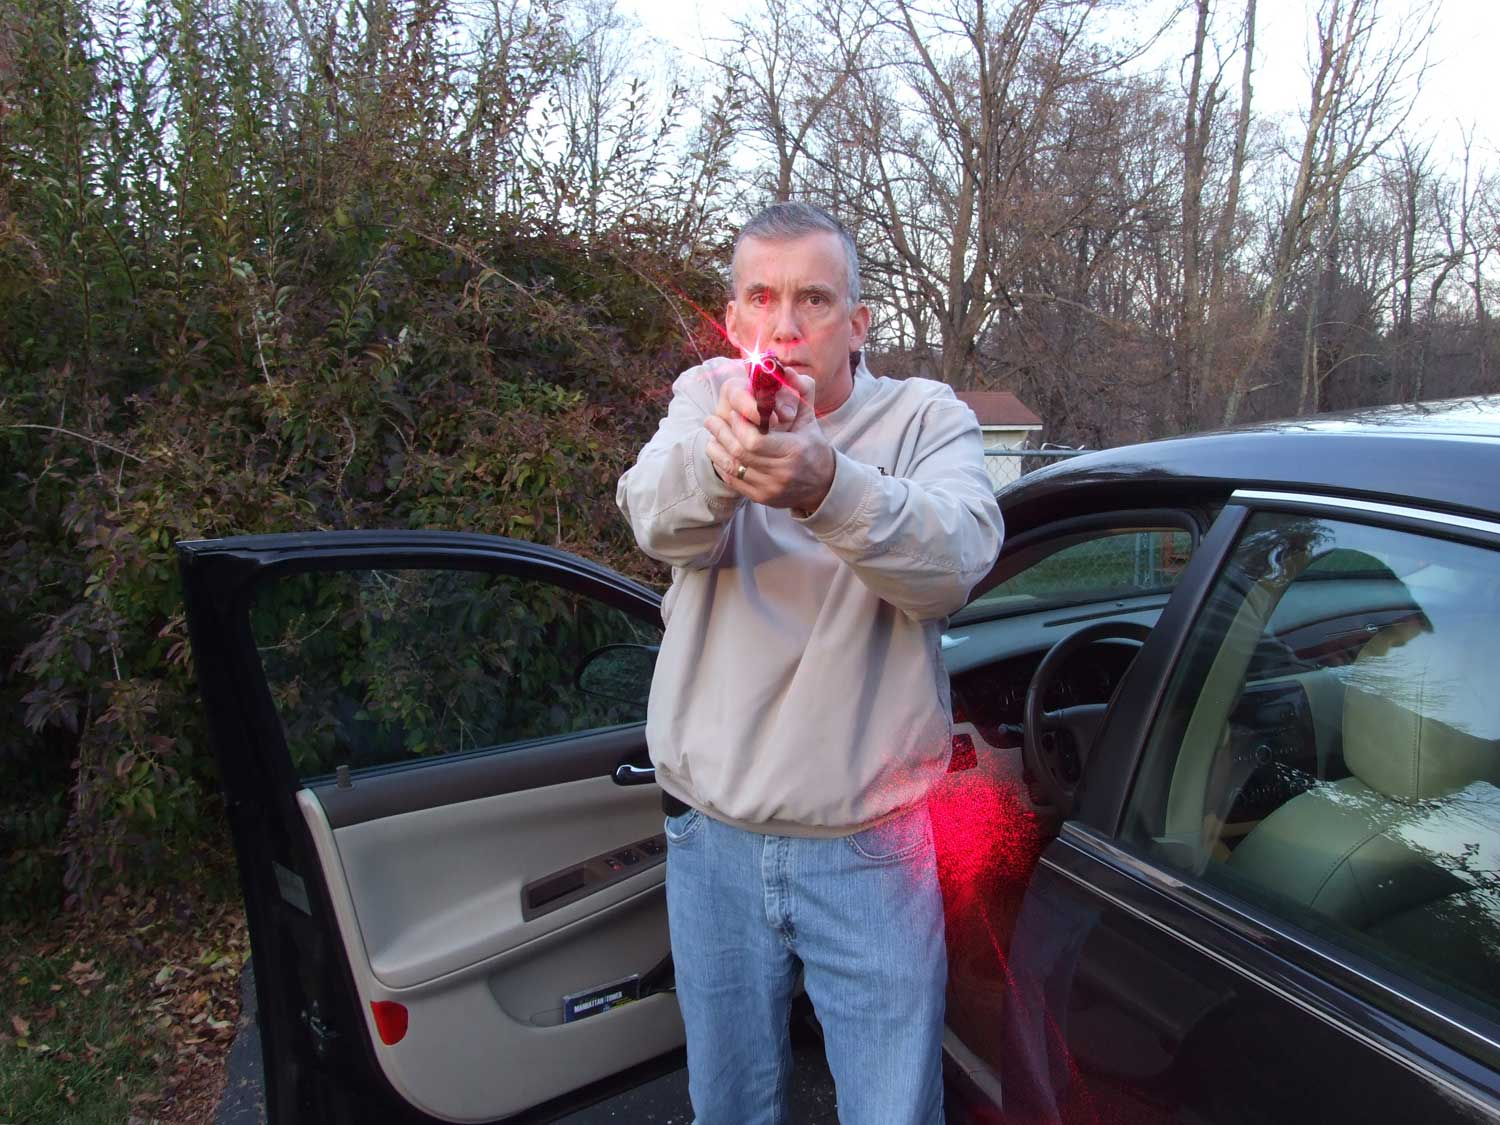 Scott Wagner standing in front of a car door with a Smith and Wesson .38 Bodyguard pistol